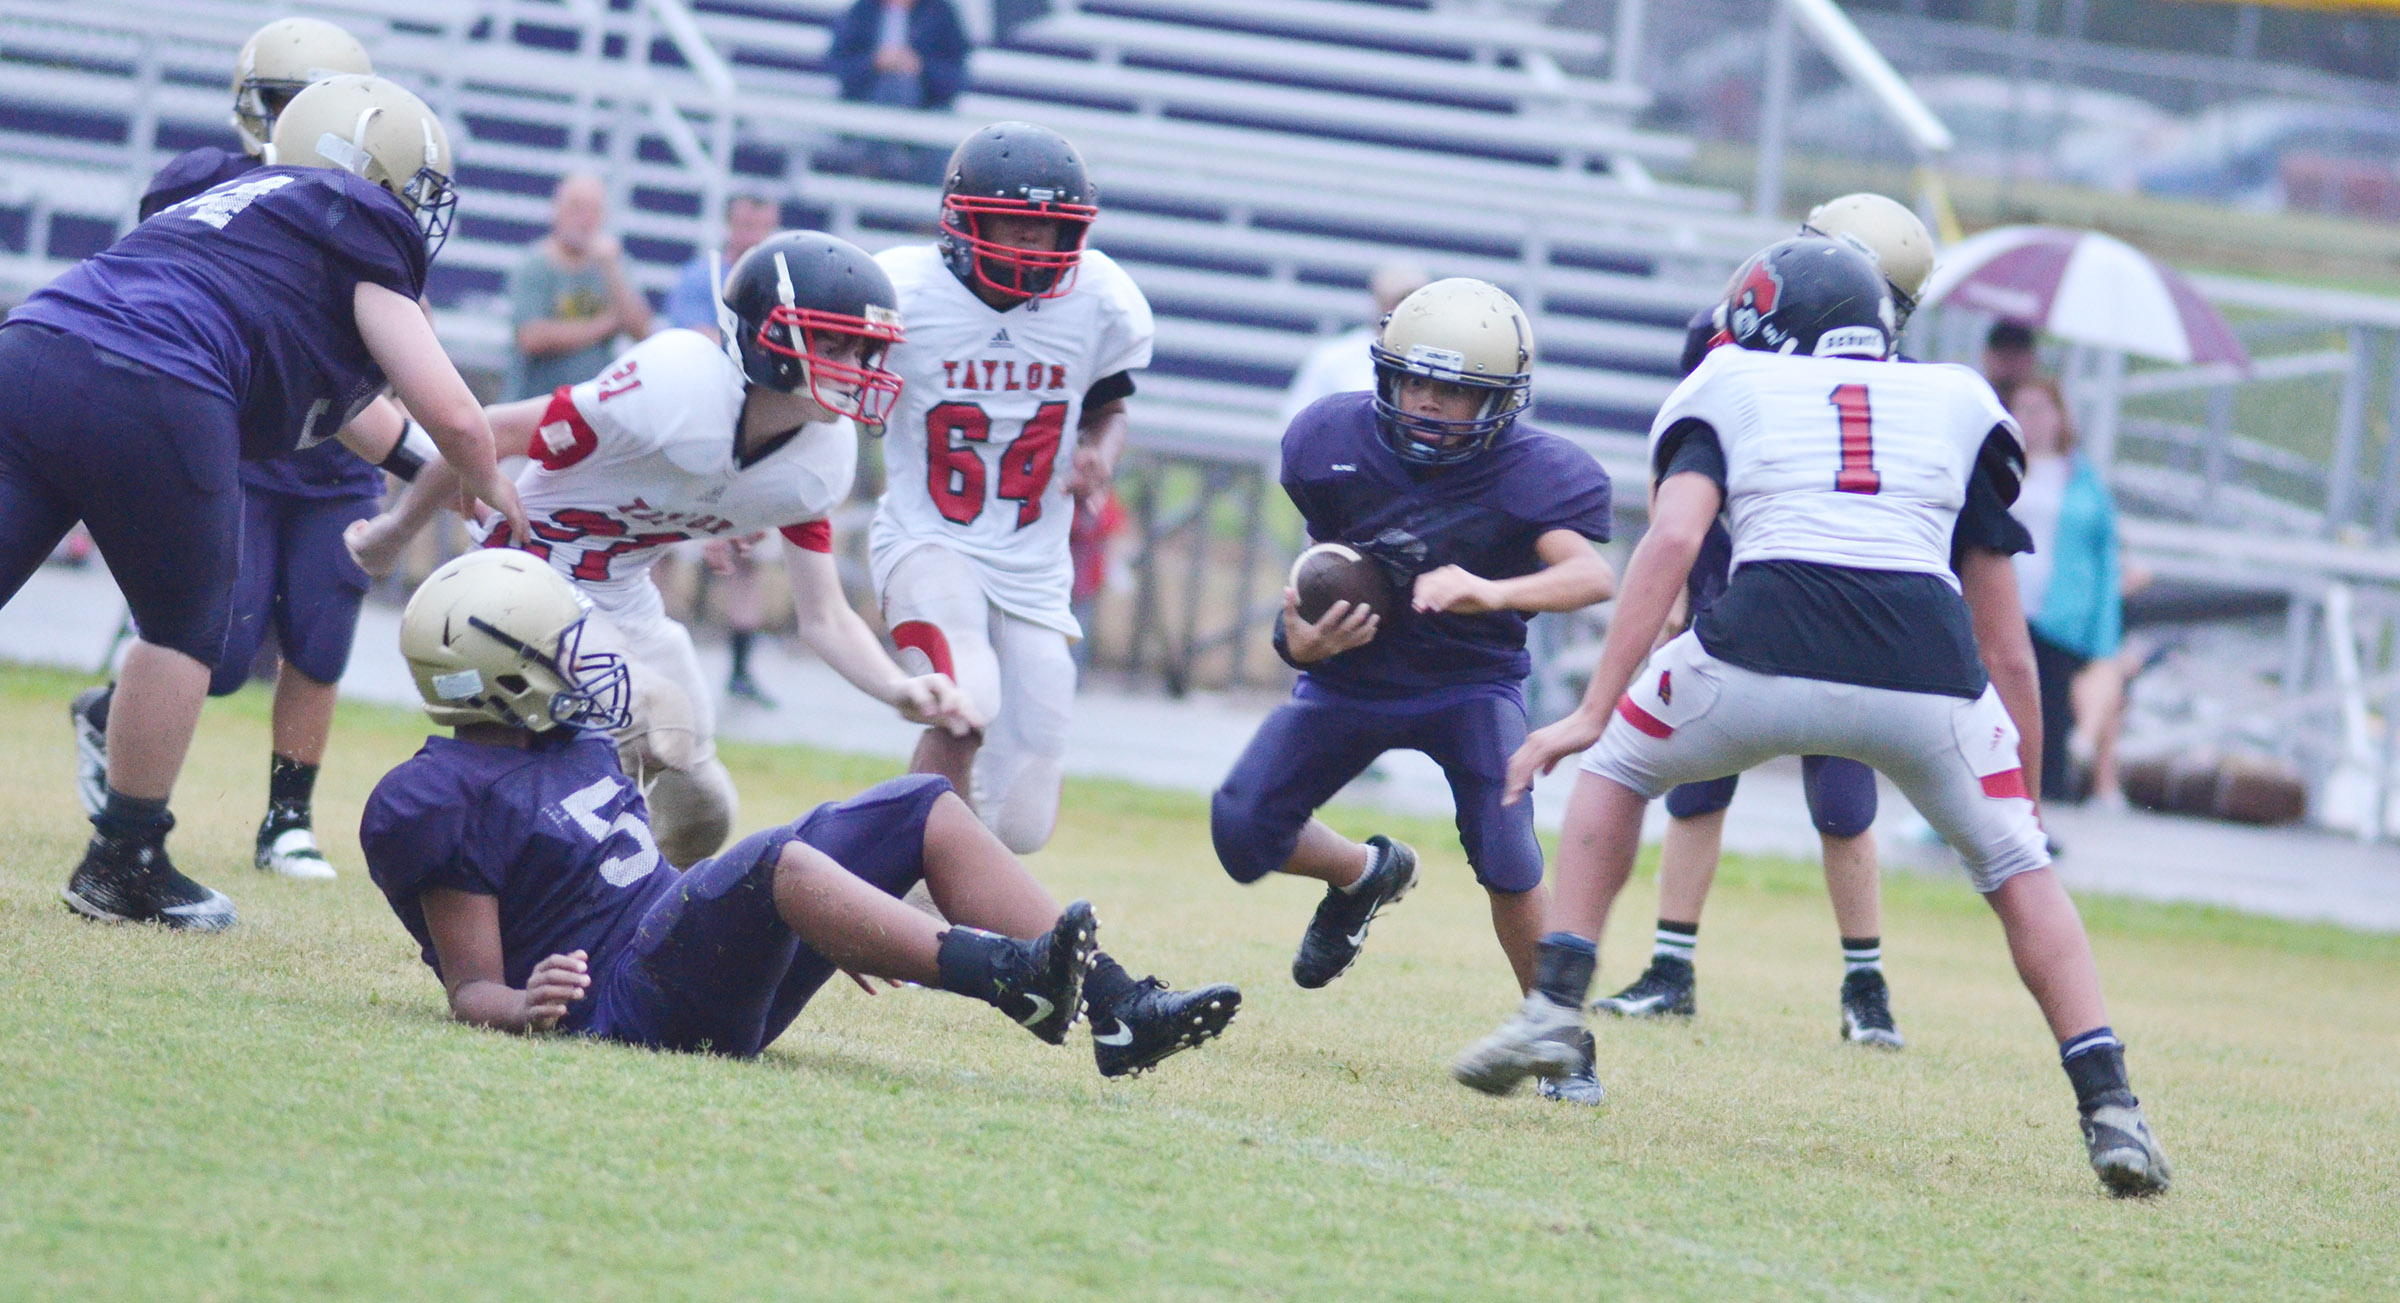 CMS eighth-grader Brice Spaw runs the ball.